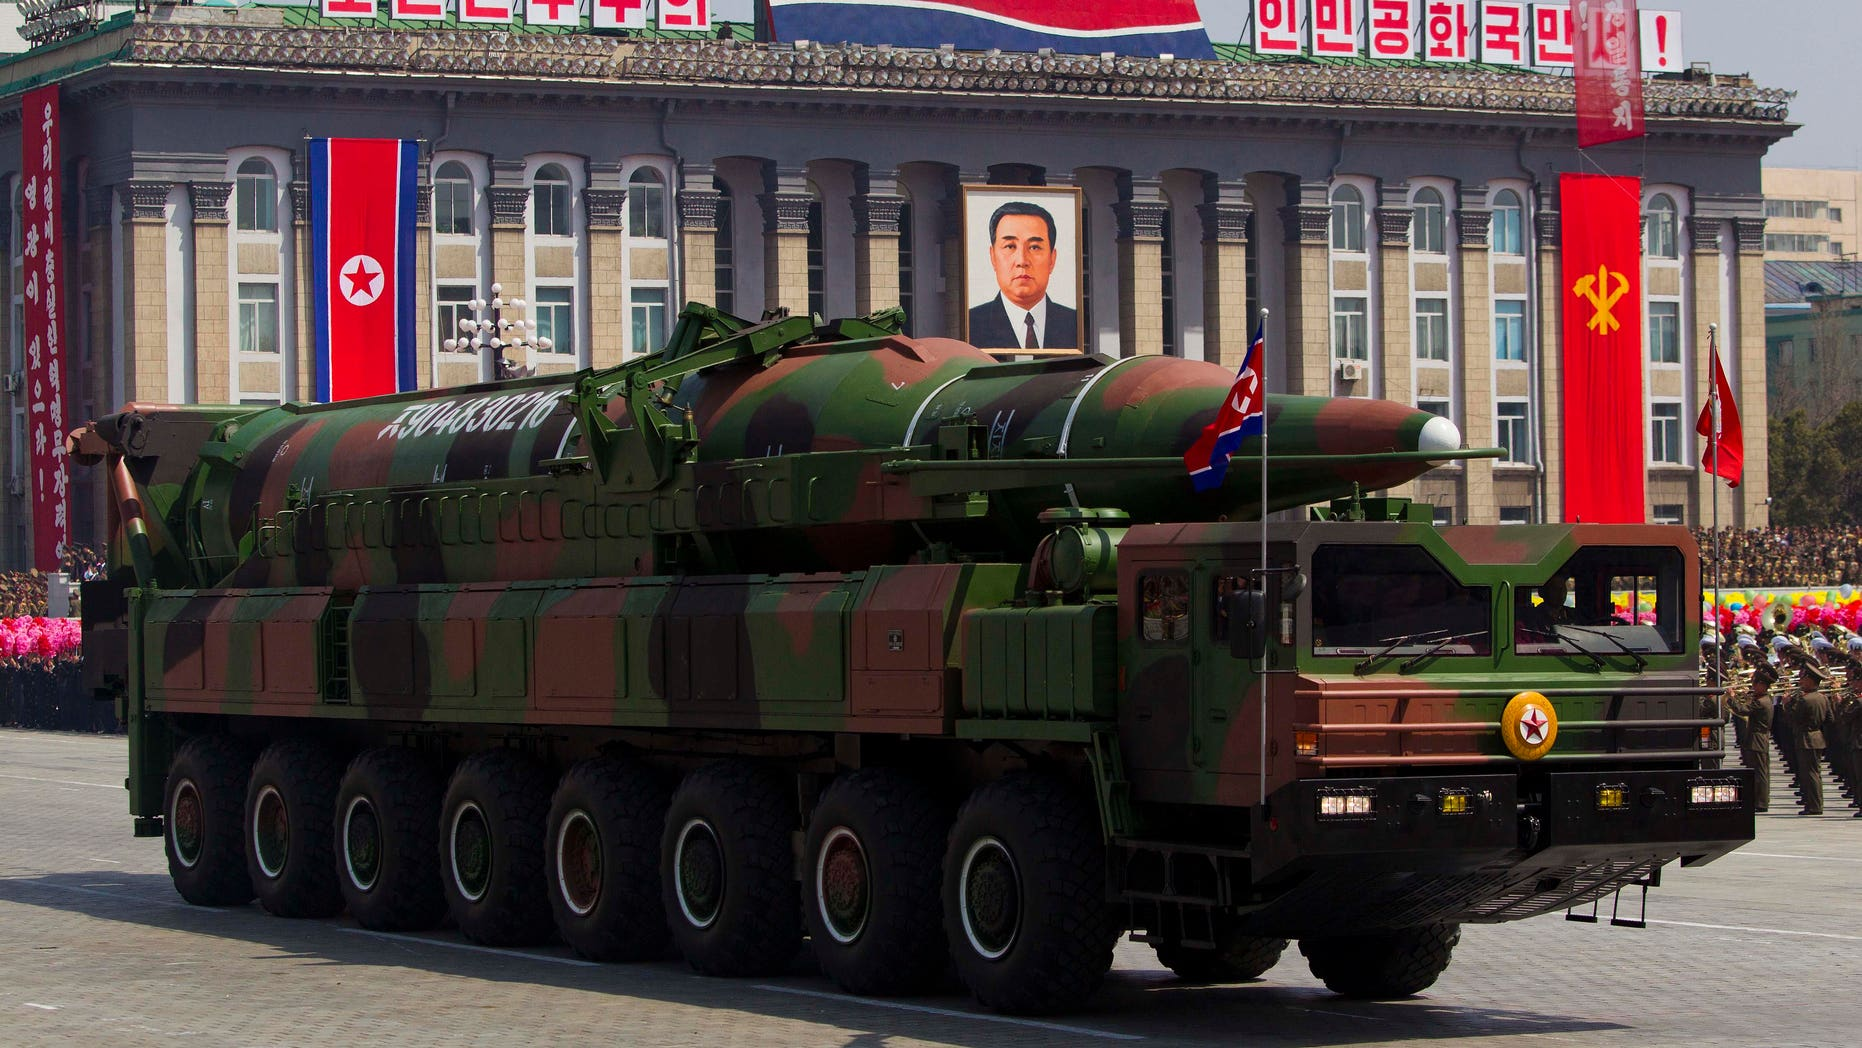 April 15, 2012: In this file photo, a North Korean vehicle carries a missile during a mass military parade in Pyongyang's Kim Il Sung Square to celebrate the centenary of the birth of the late North Korean founder Kim Il Sung.